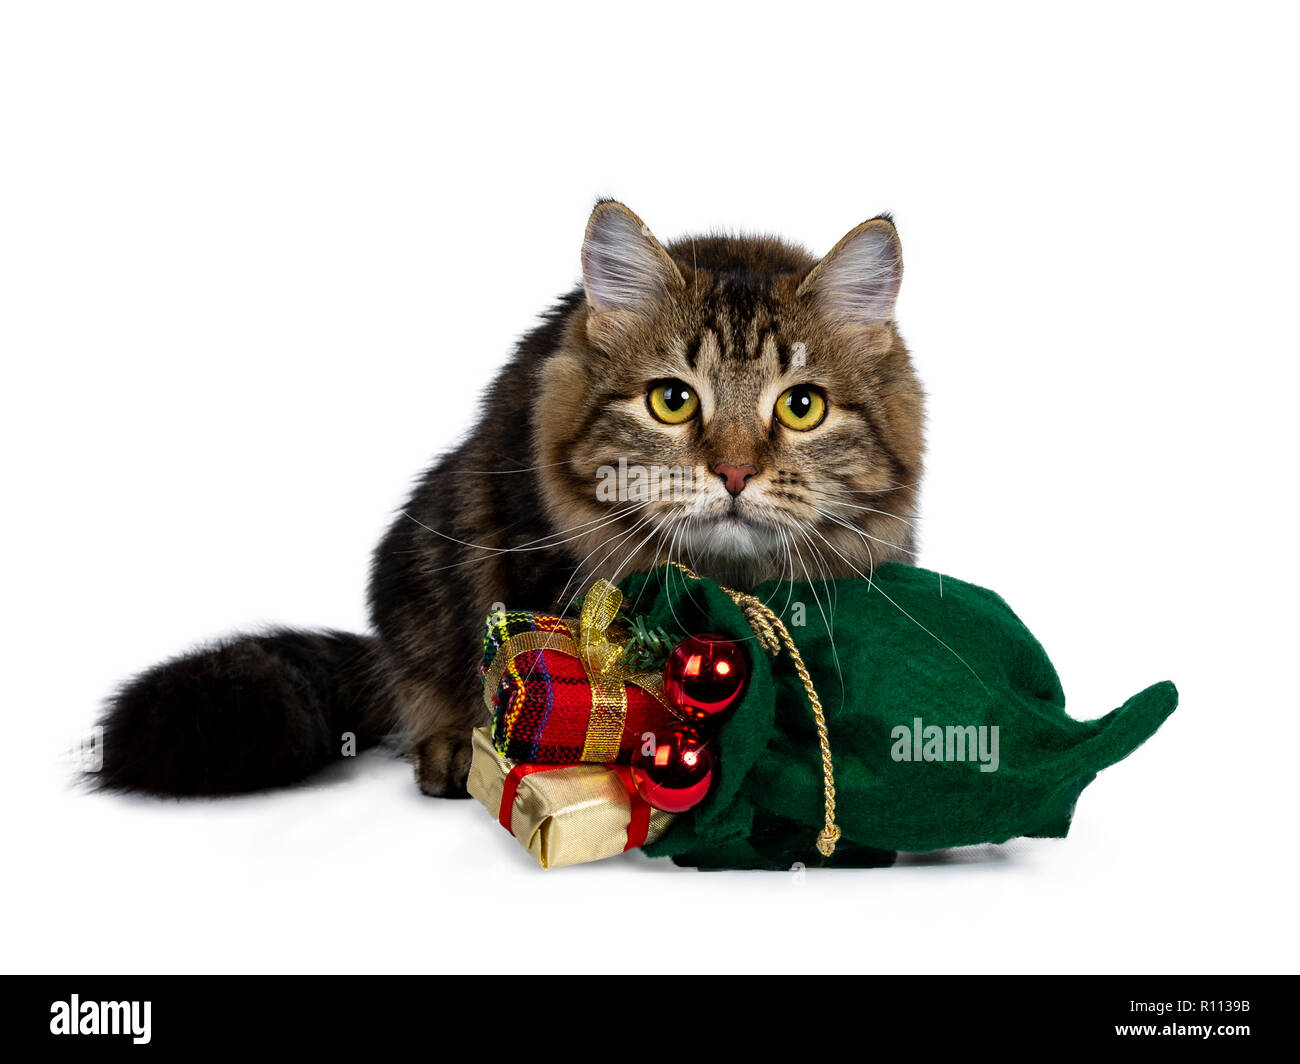 Cute black tabby Siberian cat kitten laying behind a green christmas bag filled with presents and red balls, looking very focussed with bright yellow - Stock Image